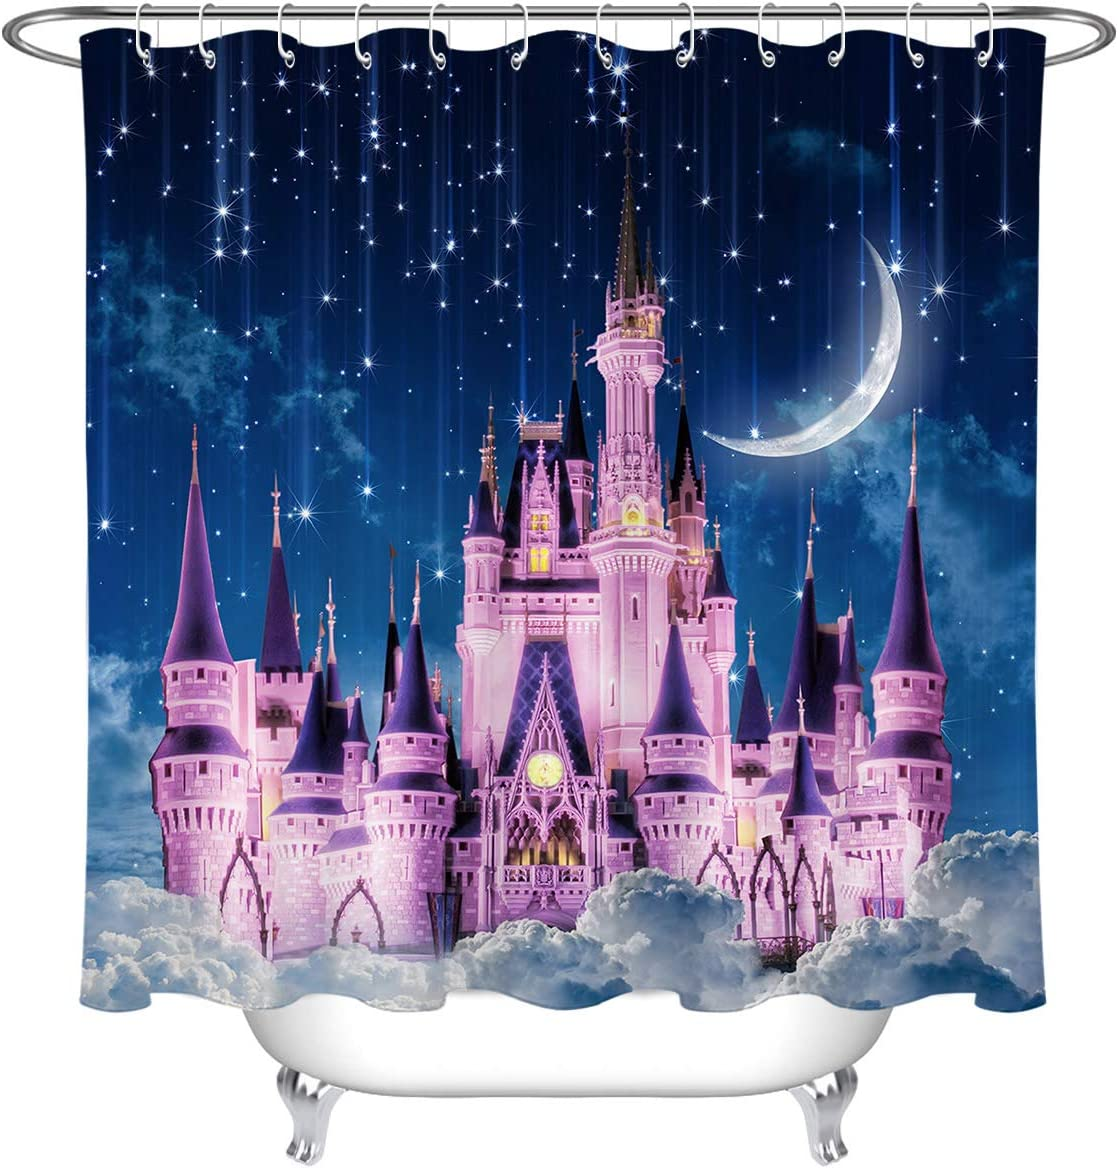 72W x 72H Inches Shower Curtain Sets HVEST Pink Castle Shower Curtain Dreamlike Magic Castle in Starry Sky and Moon Bath Curtain Kids Princess Fabric Fairy Tale Shower Curtains for Bathroom Decor